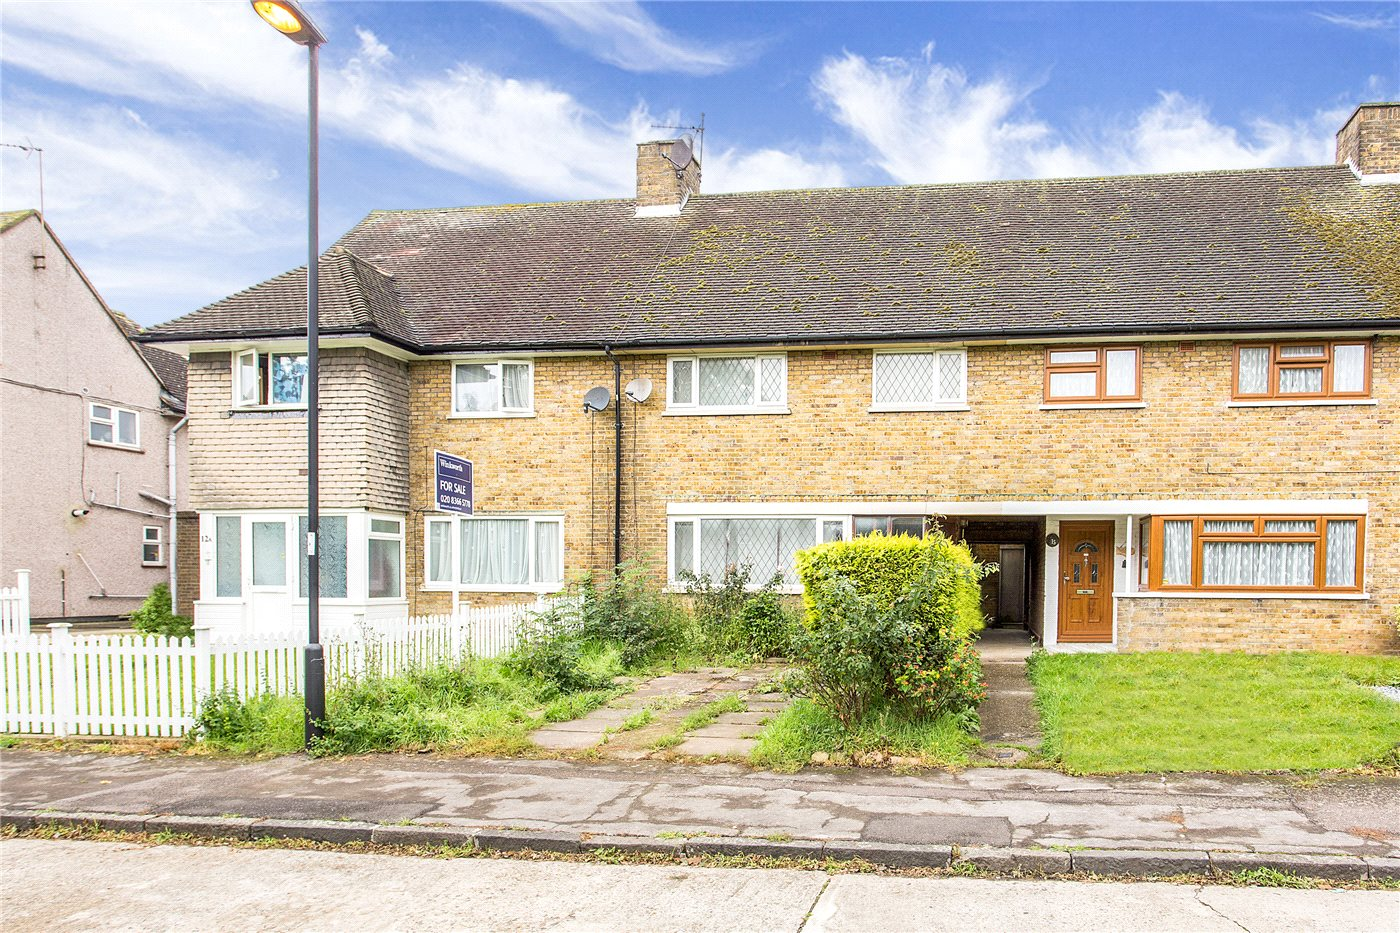 3 Bedrooms Terraced House for sale in Bowles Green, Enfield, EN1